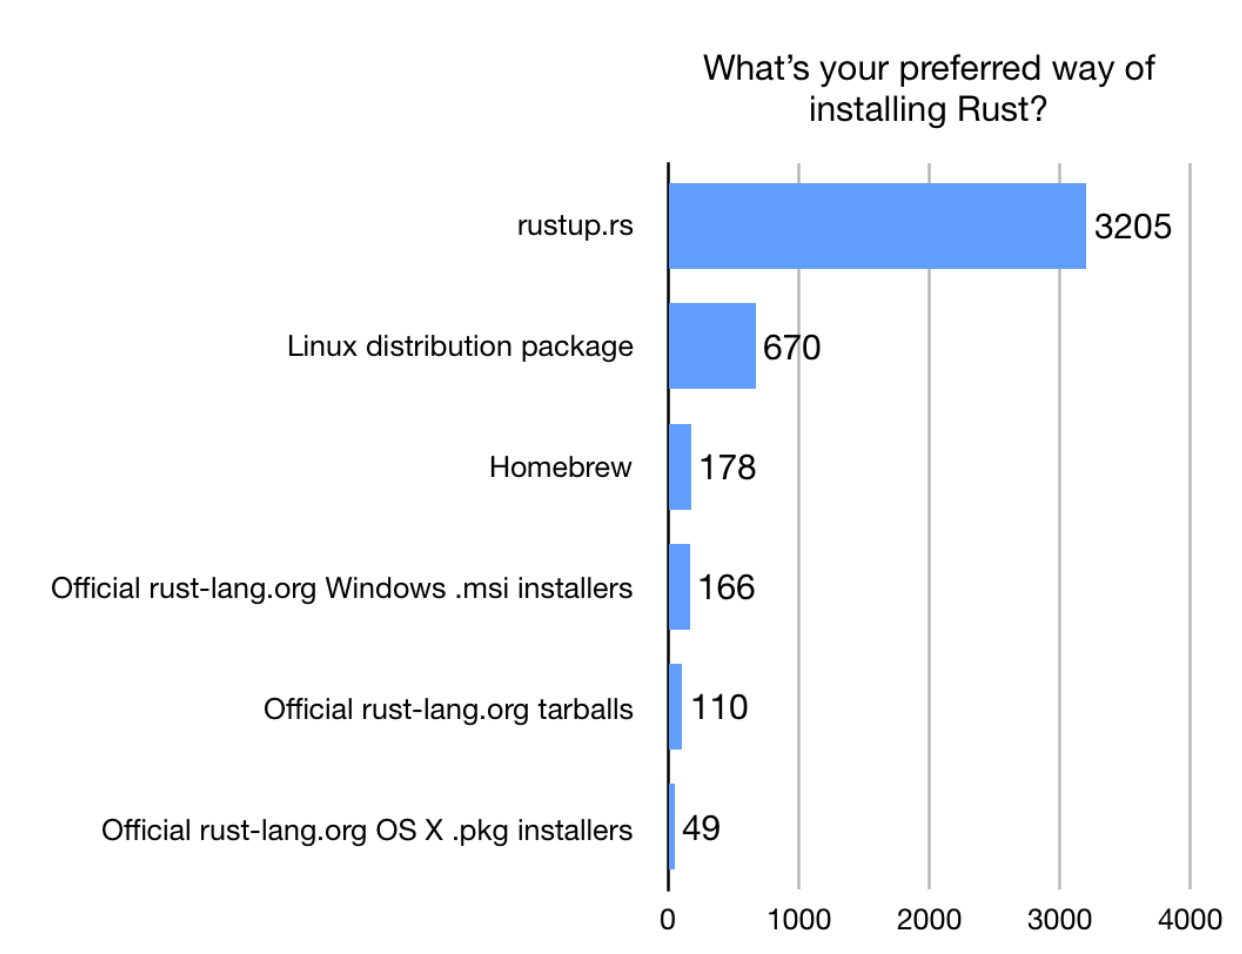 Chart: 90.2% rustup, 18.9% linux distros, 5% homebrew, 4.7% official .msi, 3.1% official tarball, 1.4% official mac pkg